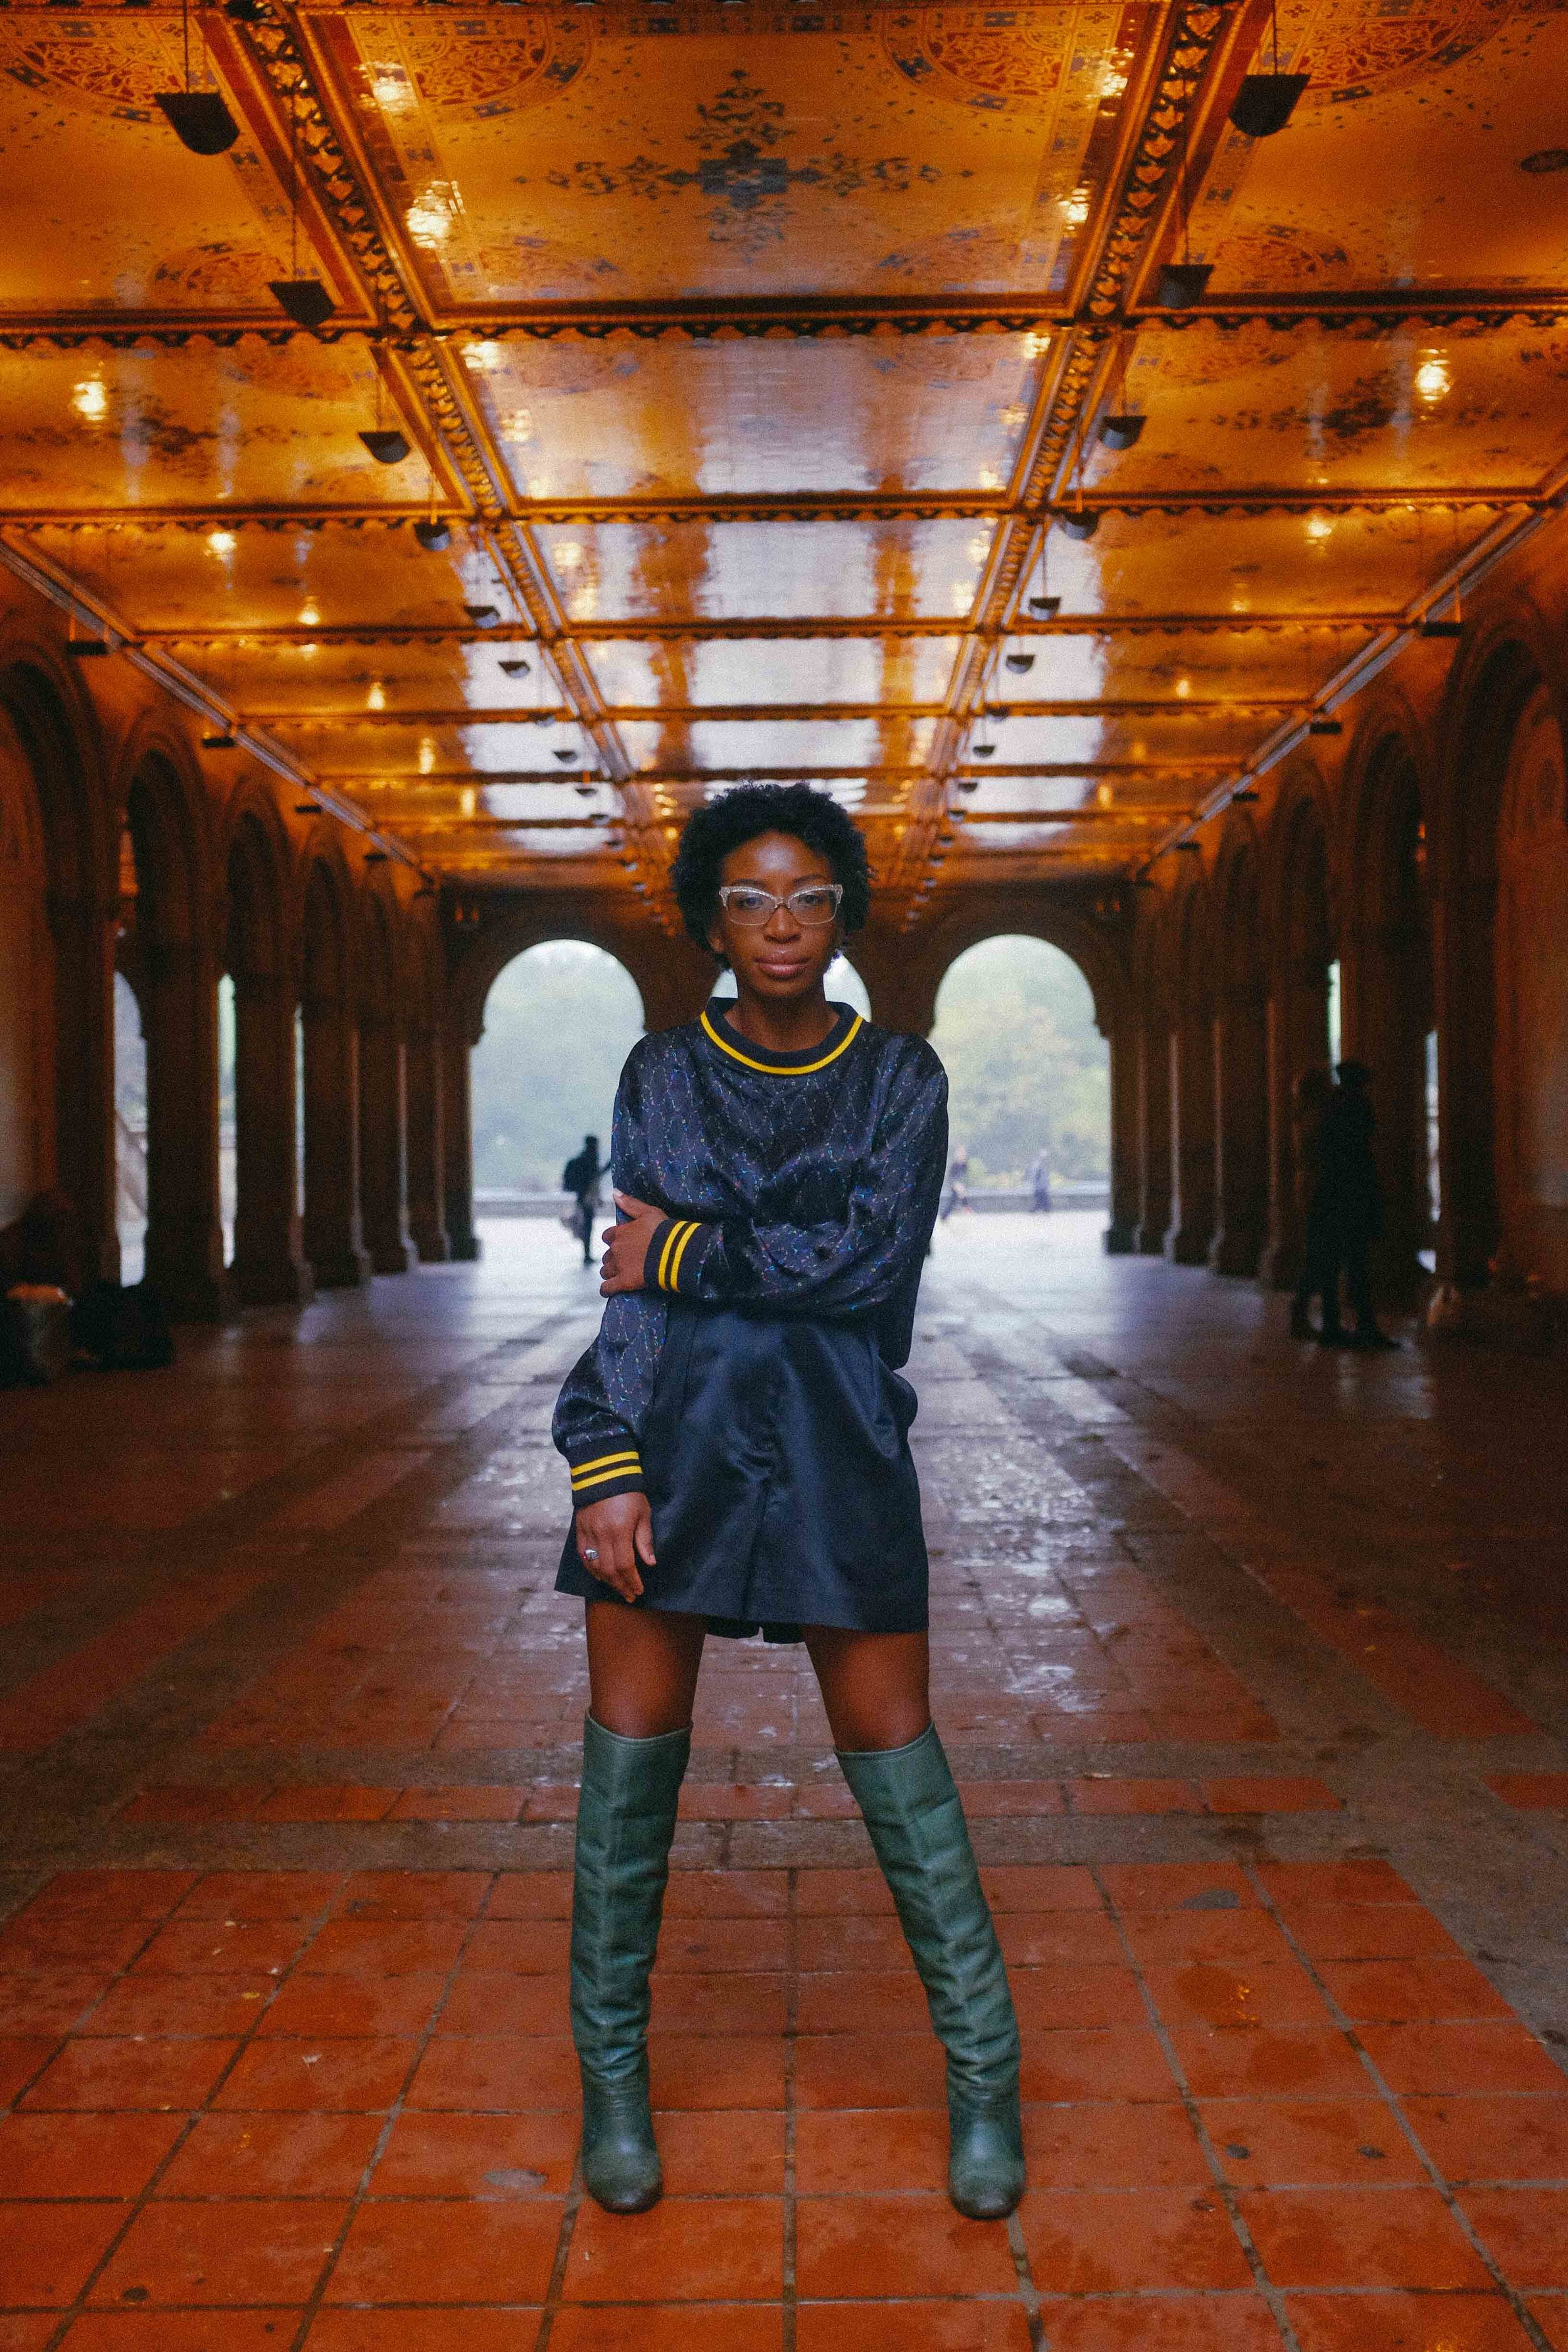 Bianca Brown captured by photographer  nothingstilldreams